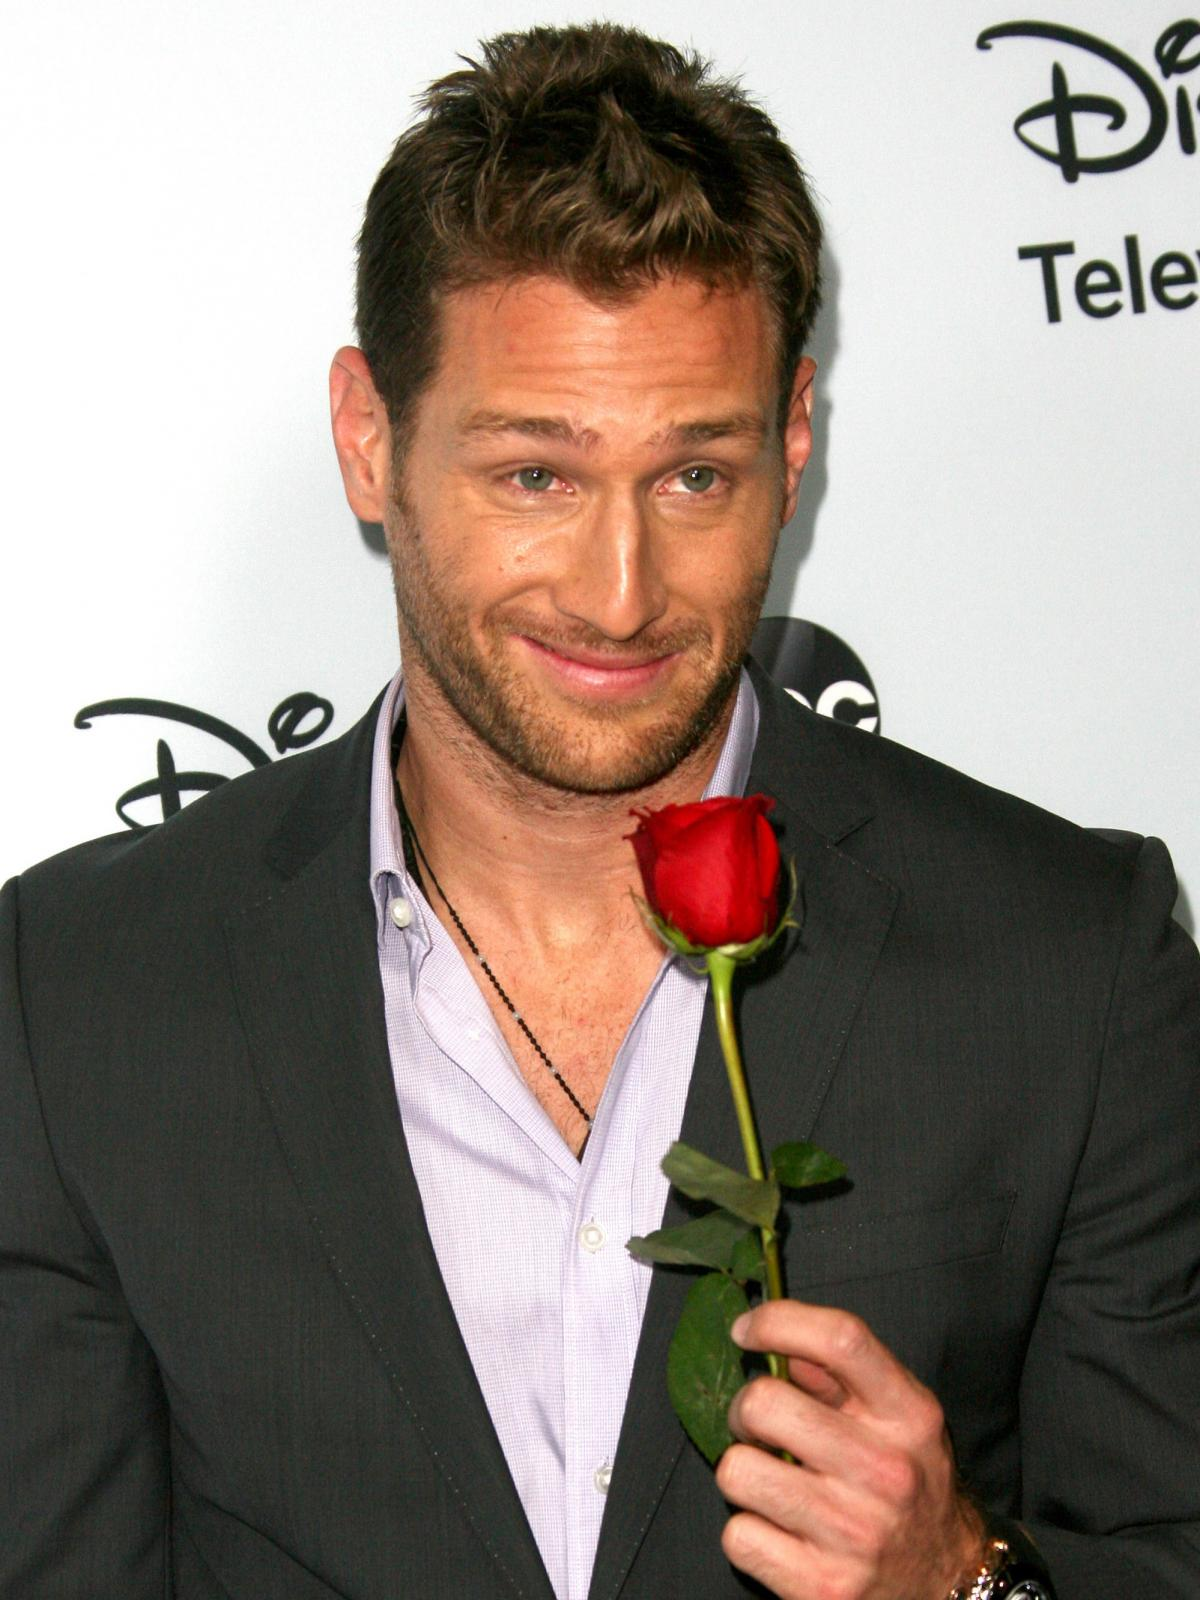 The second-most-recent Bachelor, Juan Pablo Galavis.